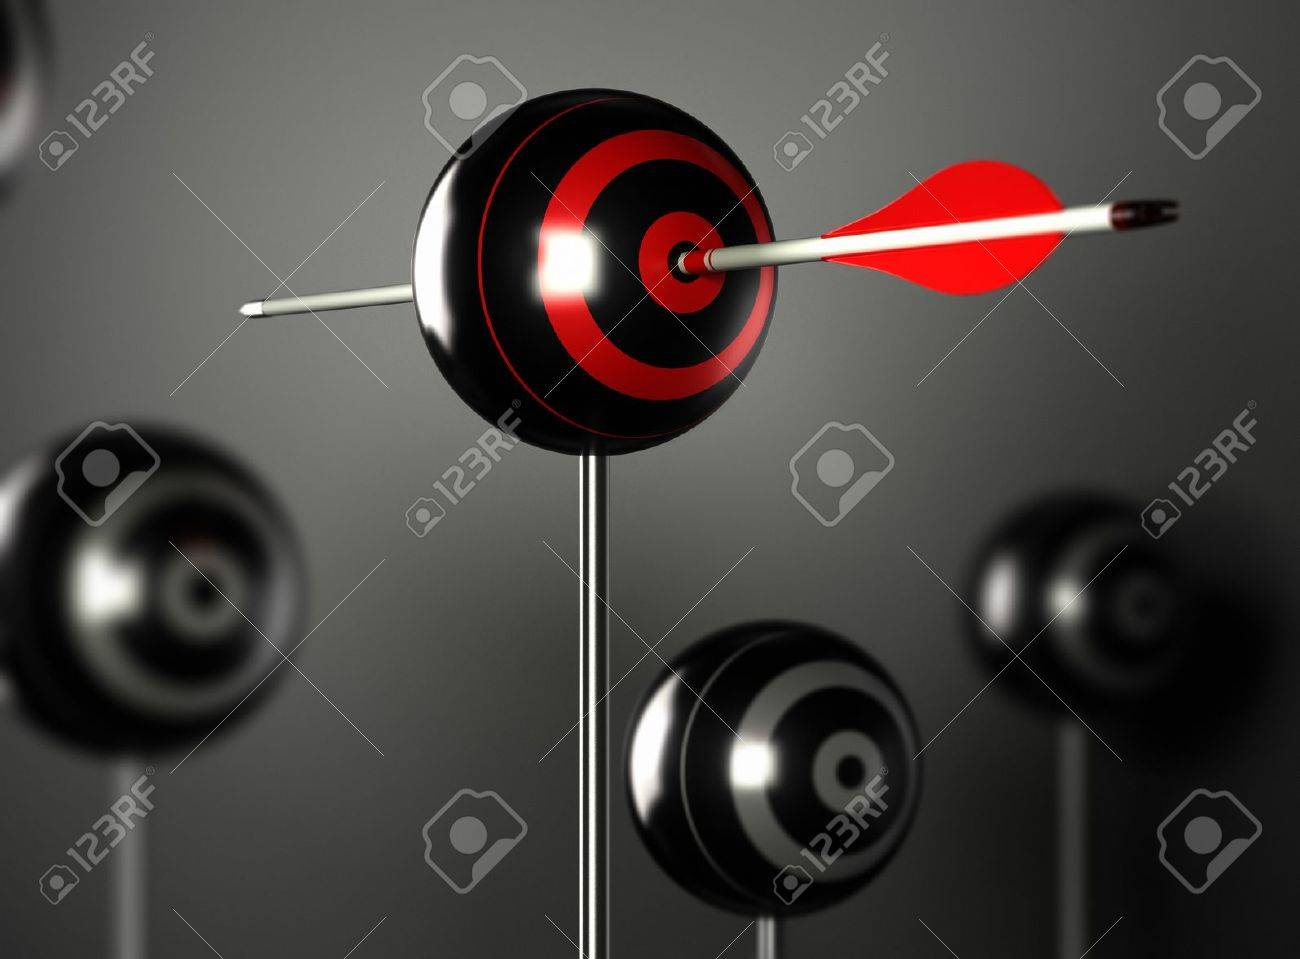 one red arrow hitting the center of a ball target with other blur targets around, black background with light effect Stock Photo - 18860468